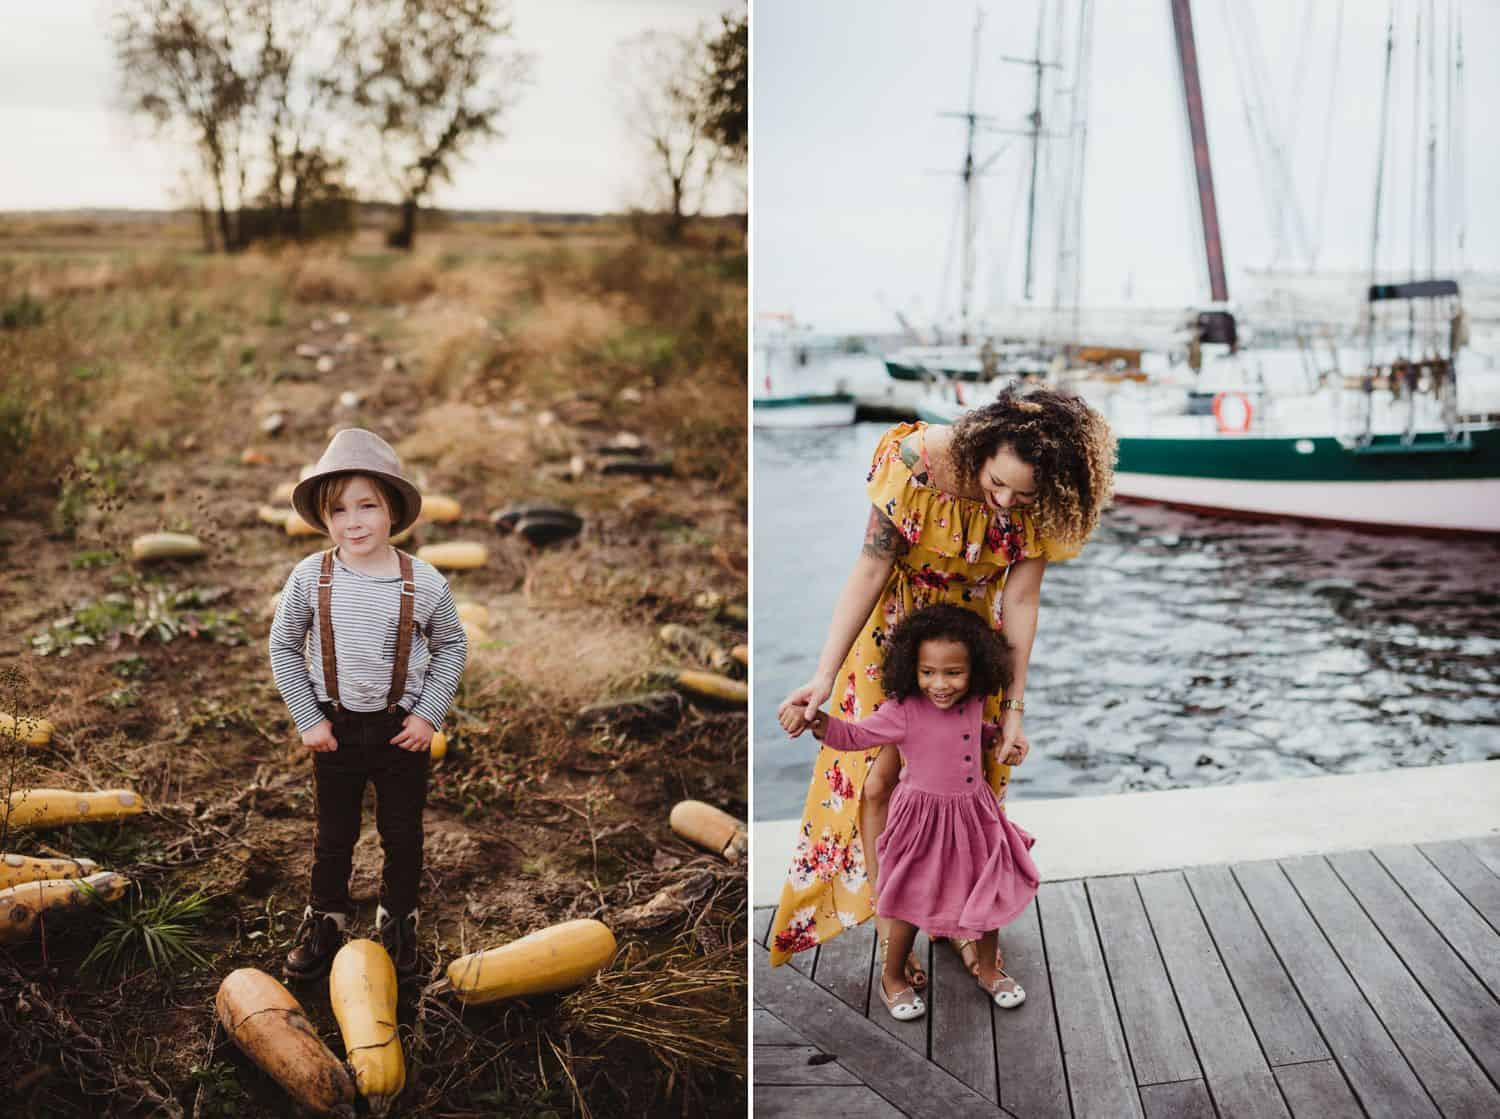 a little boy in suspenders stands in a field of squash. a mom and daughter stand on a boat dock smiling.